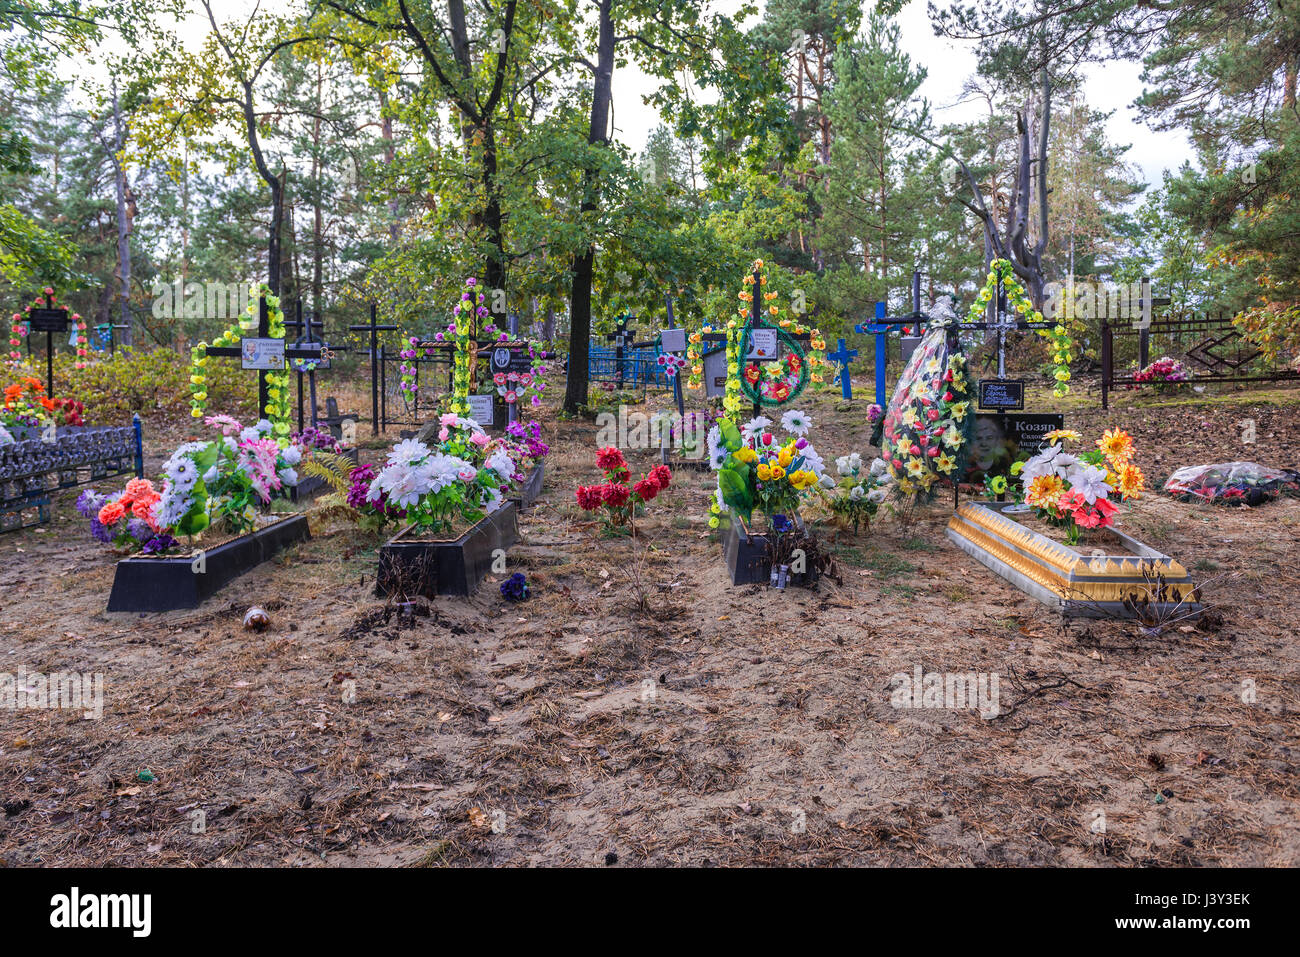 Cemetery in Kupuvate village of Chernobyl Nuclear Power Plant Zone of Alienation around nuclear reactor disaster - Stock Image